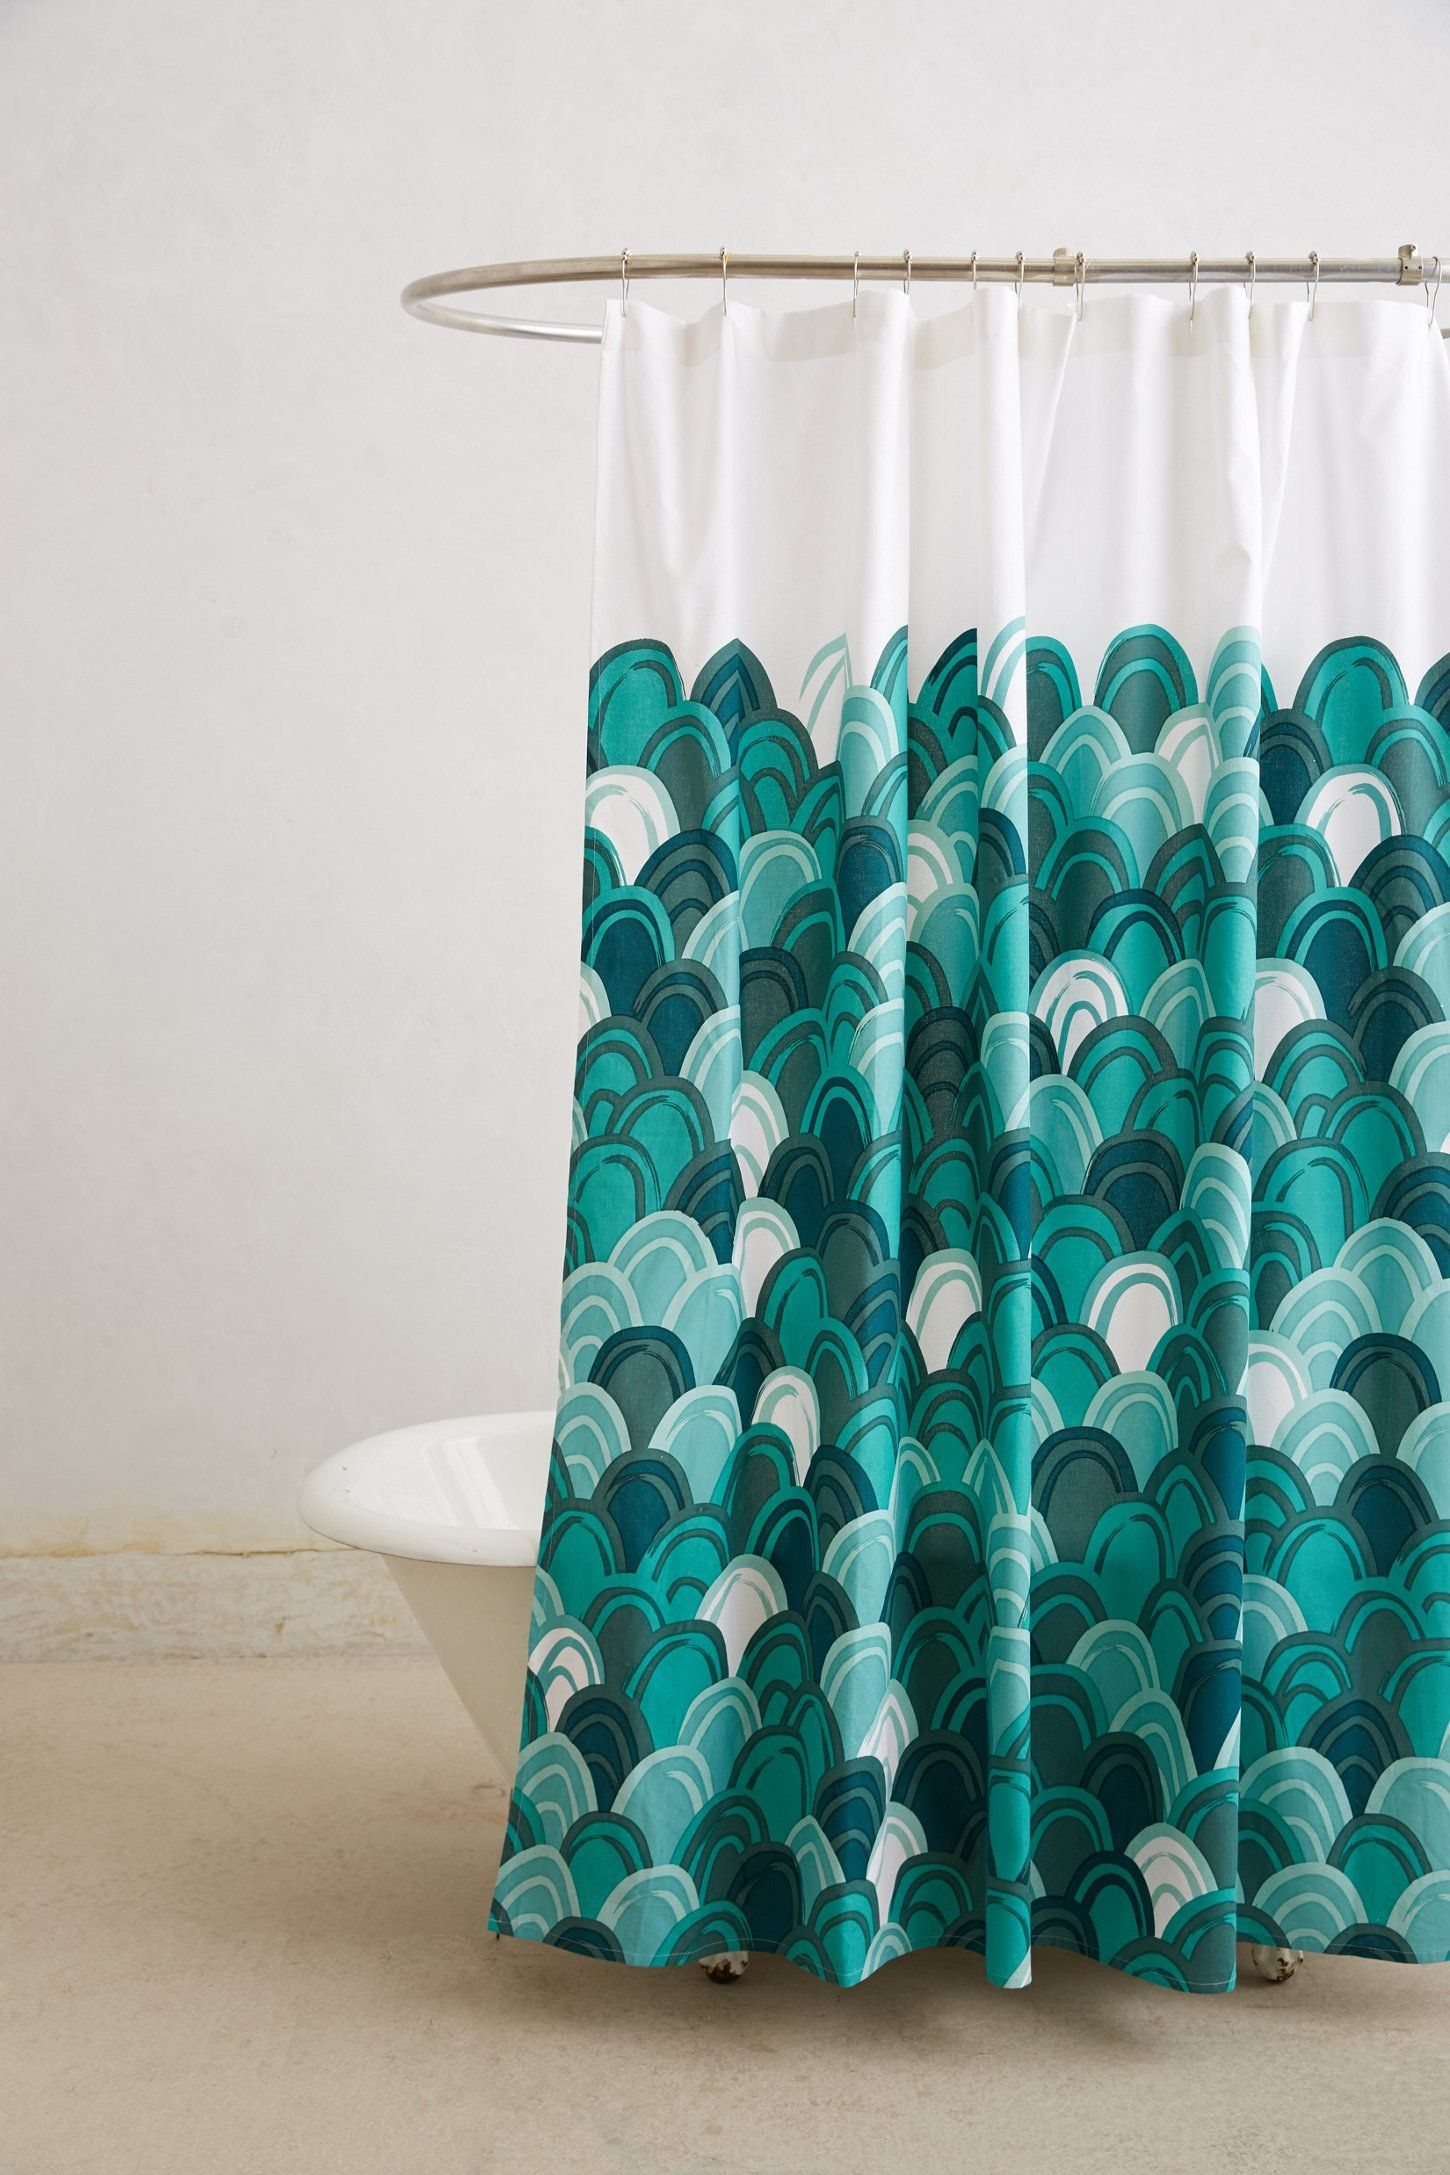 Emerald Shells Shower Curtain - Anthropologie.com: Emerald and fantastically graphic.